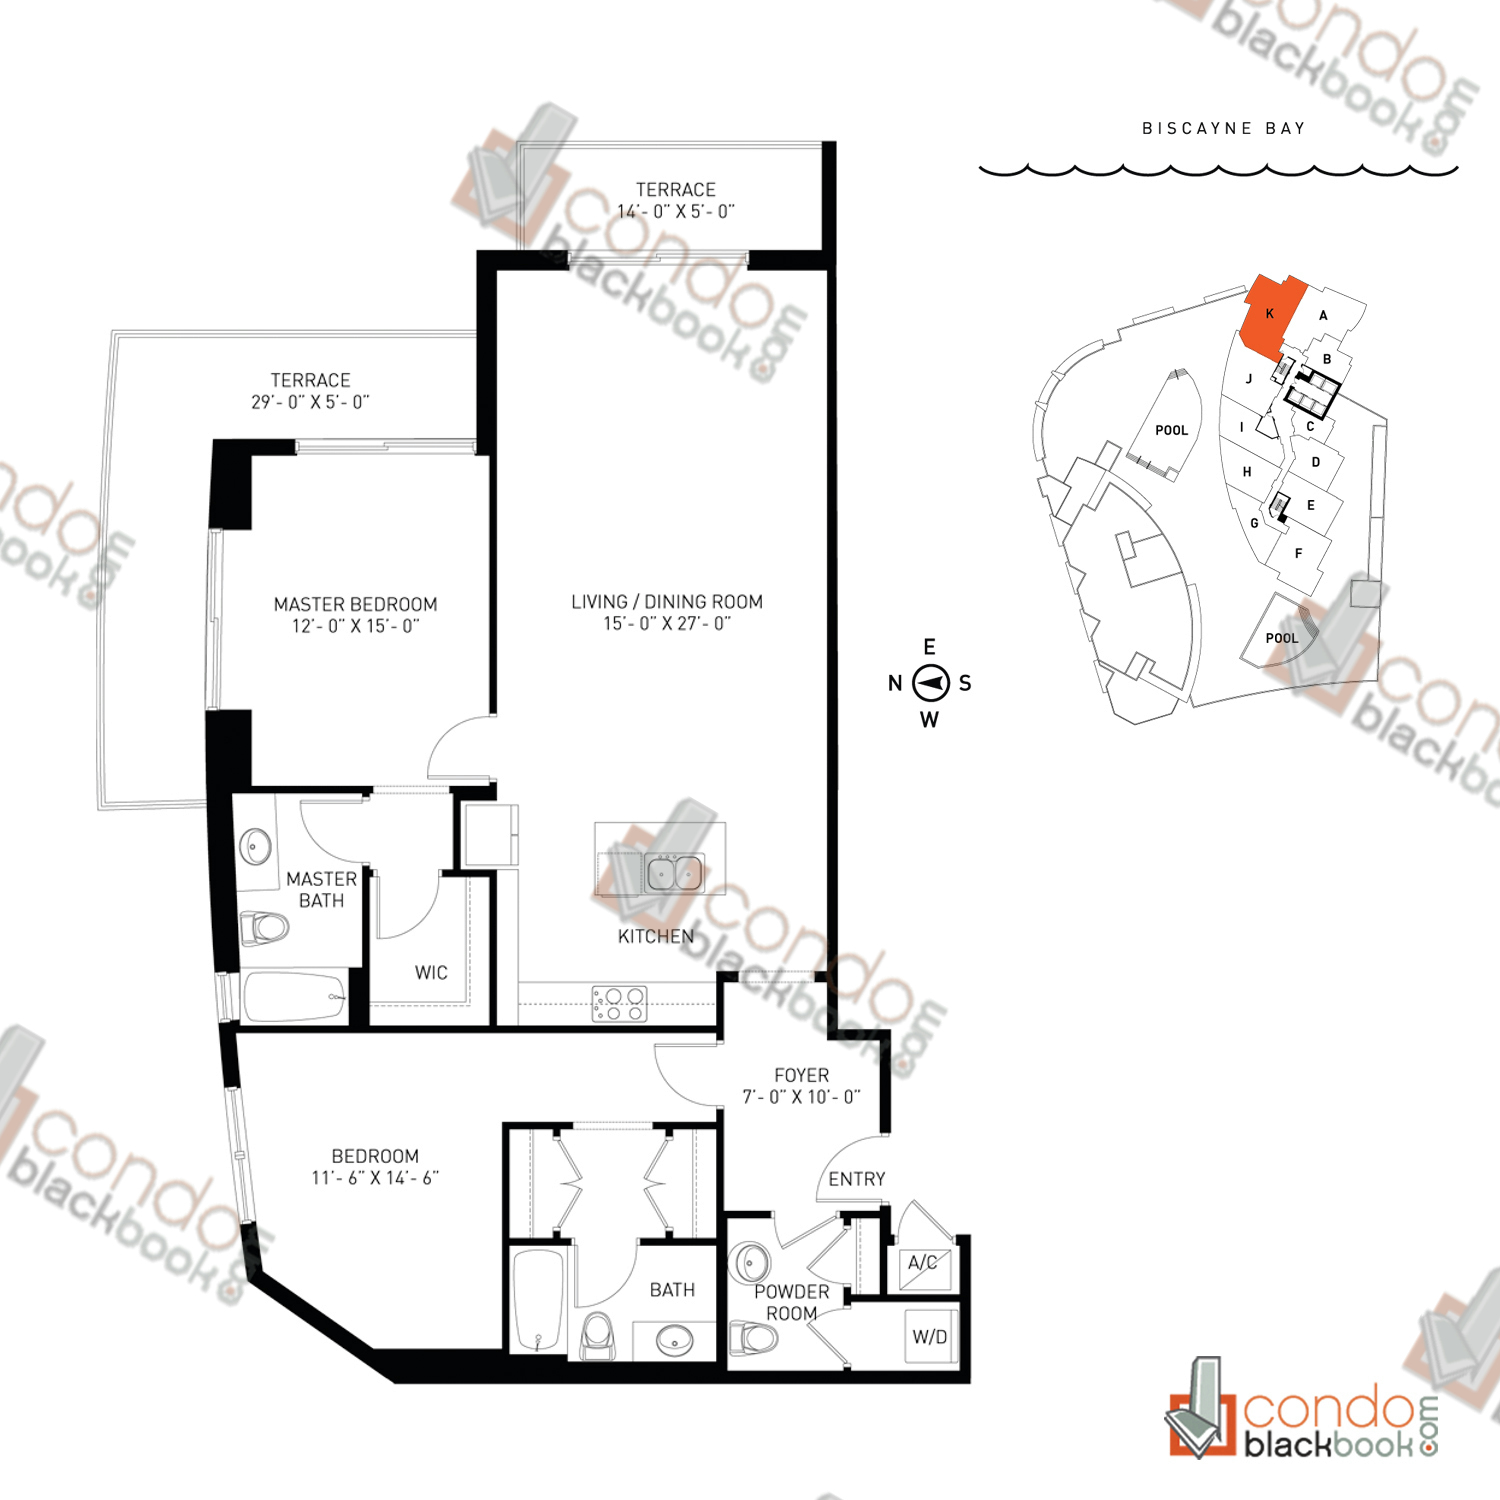 Floor plan for Quantum on the Bay Edgewater Miami, model Residence_K, line South Tower - 02, 2/2.5 bedrooms, 1,400 sq ft